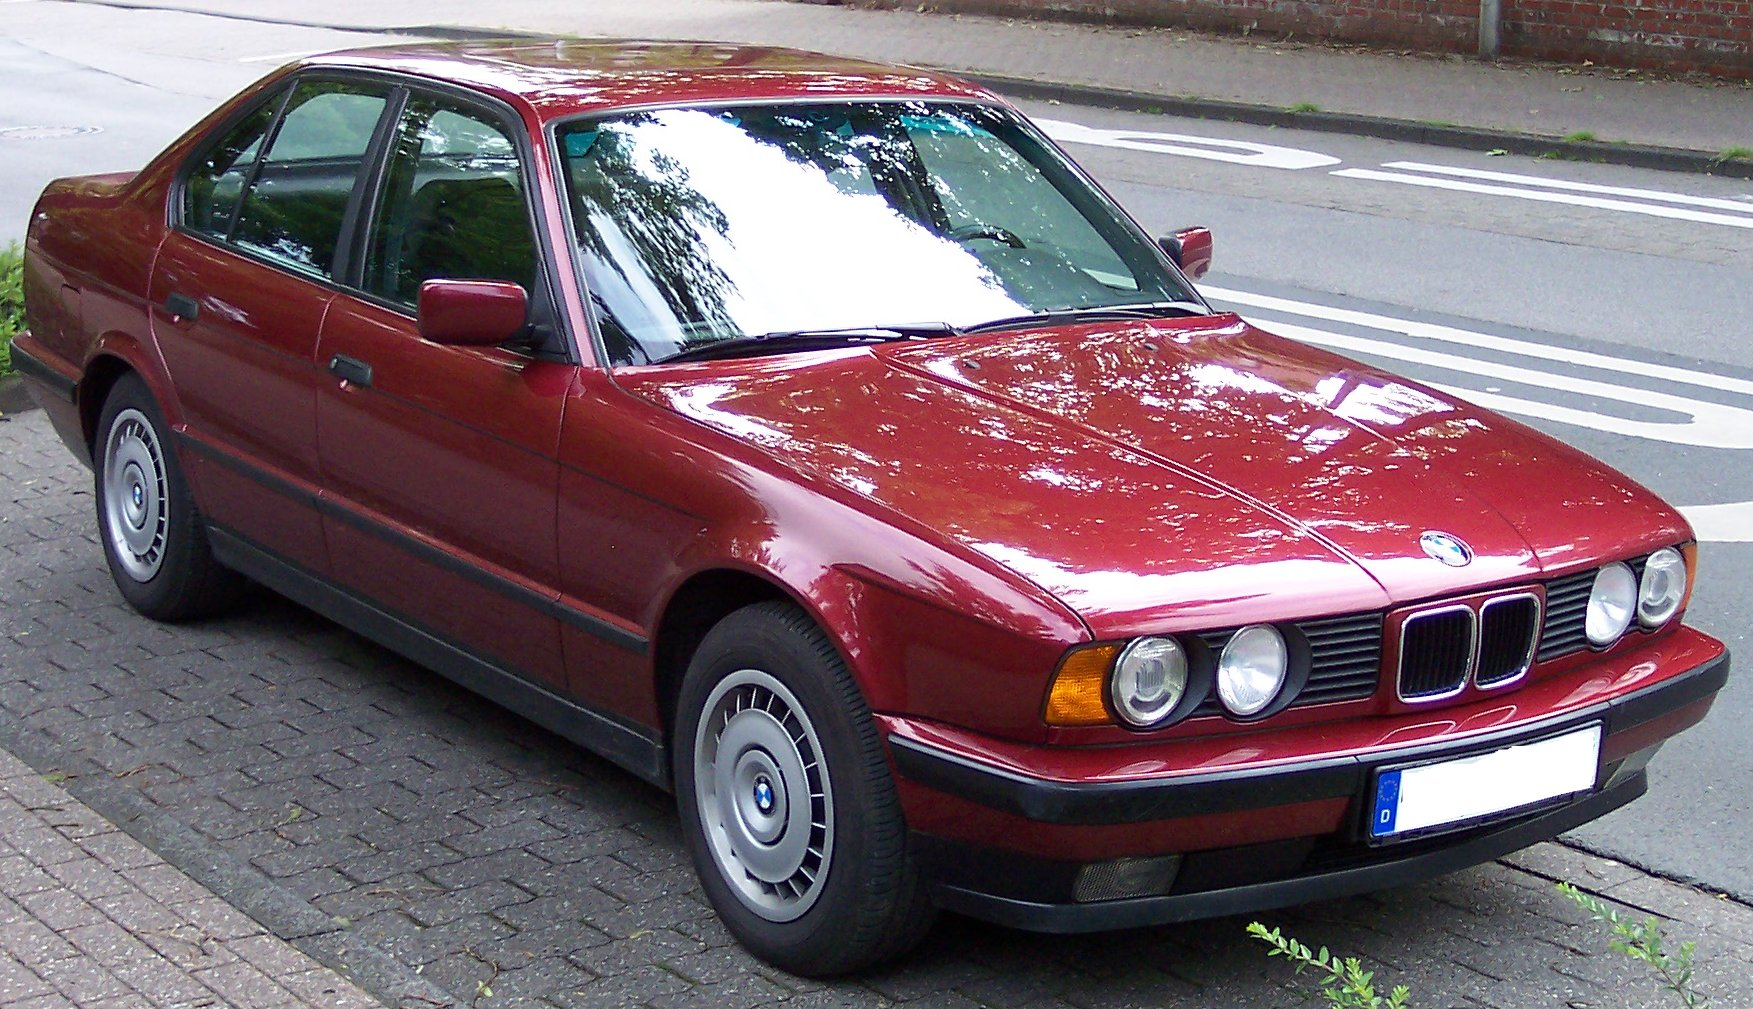 File Bmw Series 5 Old Model Red Vr Jpg Wikimedia Commons